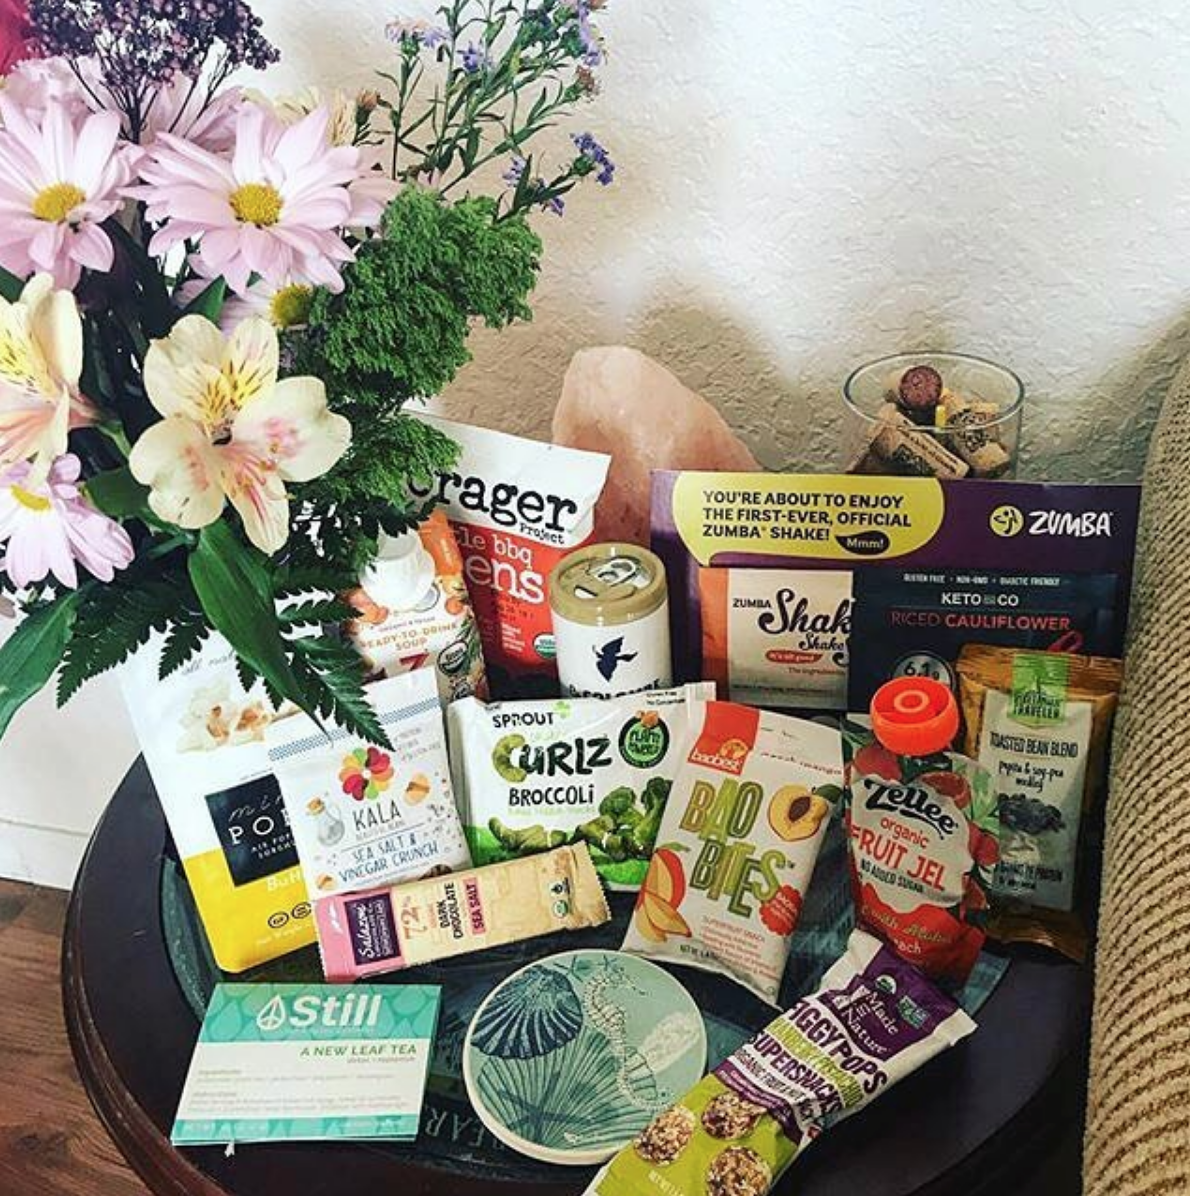 Get ready to indulge in Vegan goodness ♡: - ↦ Free shipping to the United States↦ 10+ delicious goodies per box↦ Yummy & Healthy all at once↦ Lot's of gluten-free options↦ Mix of full & sample size snacks↦ Cancel your subscription at anytime